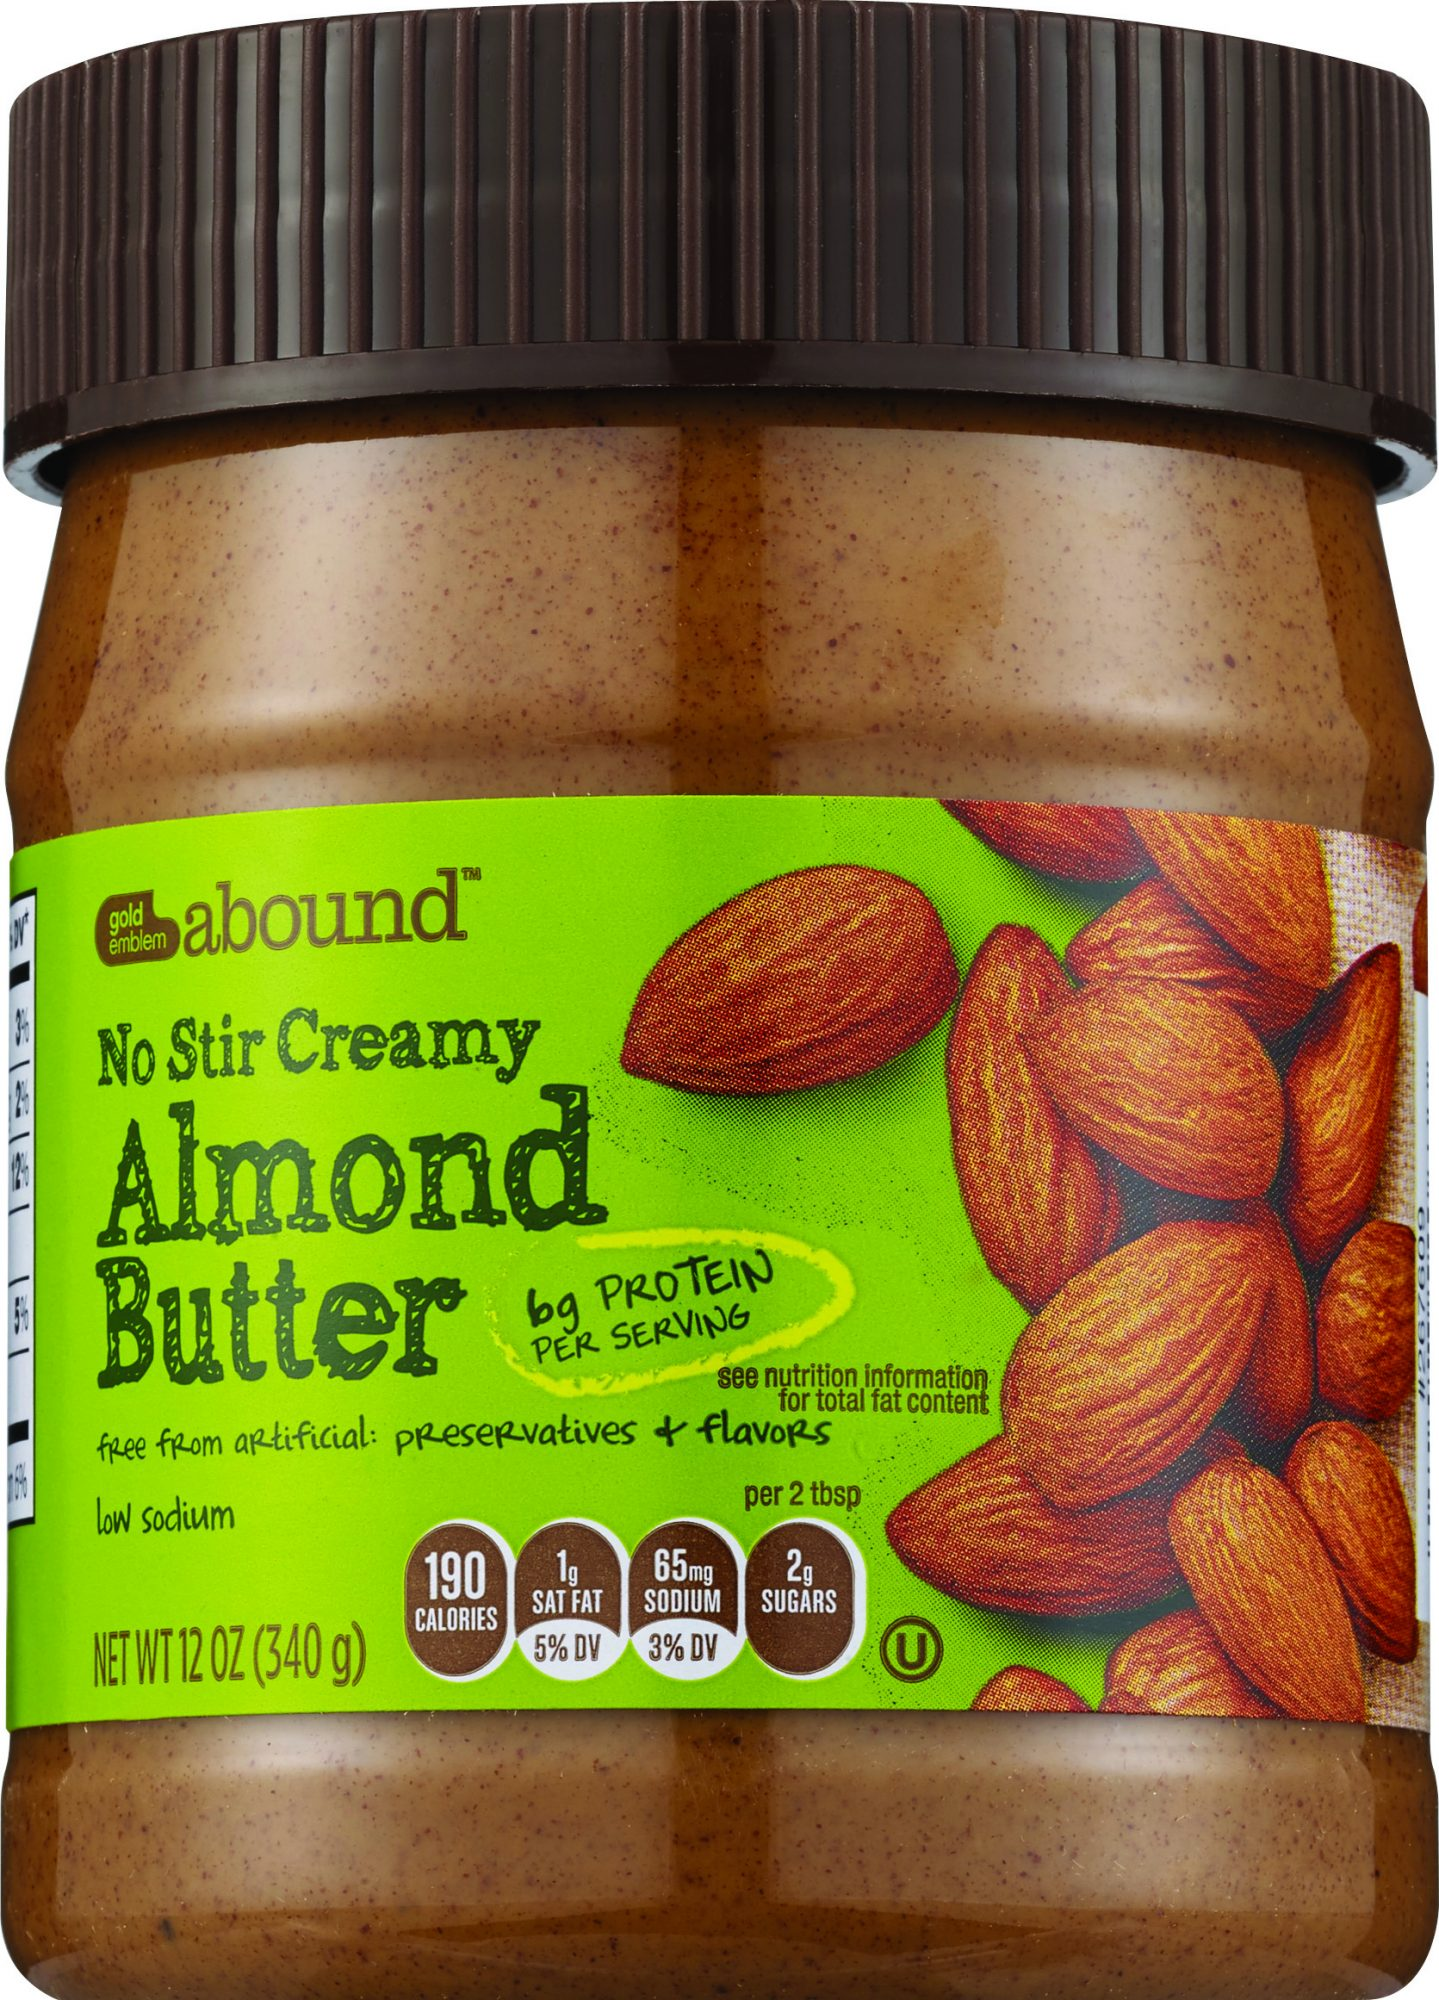 gea-almond-butter.jpeg